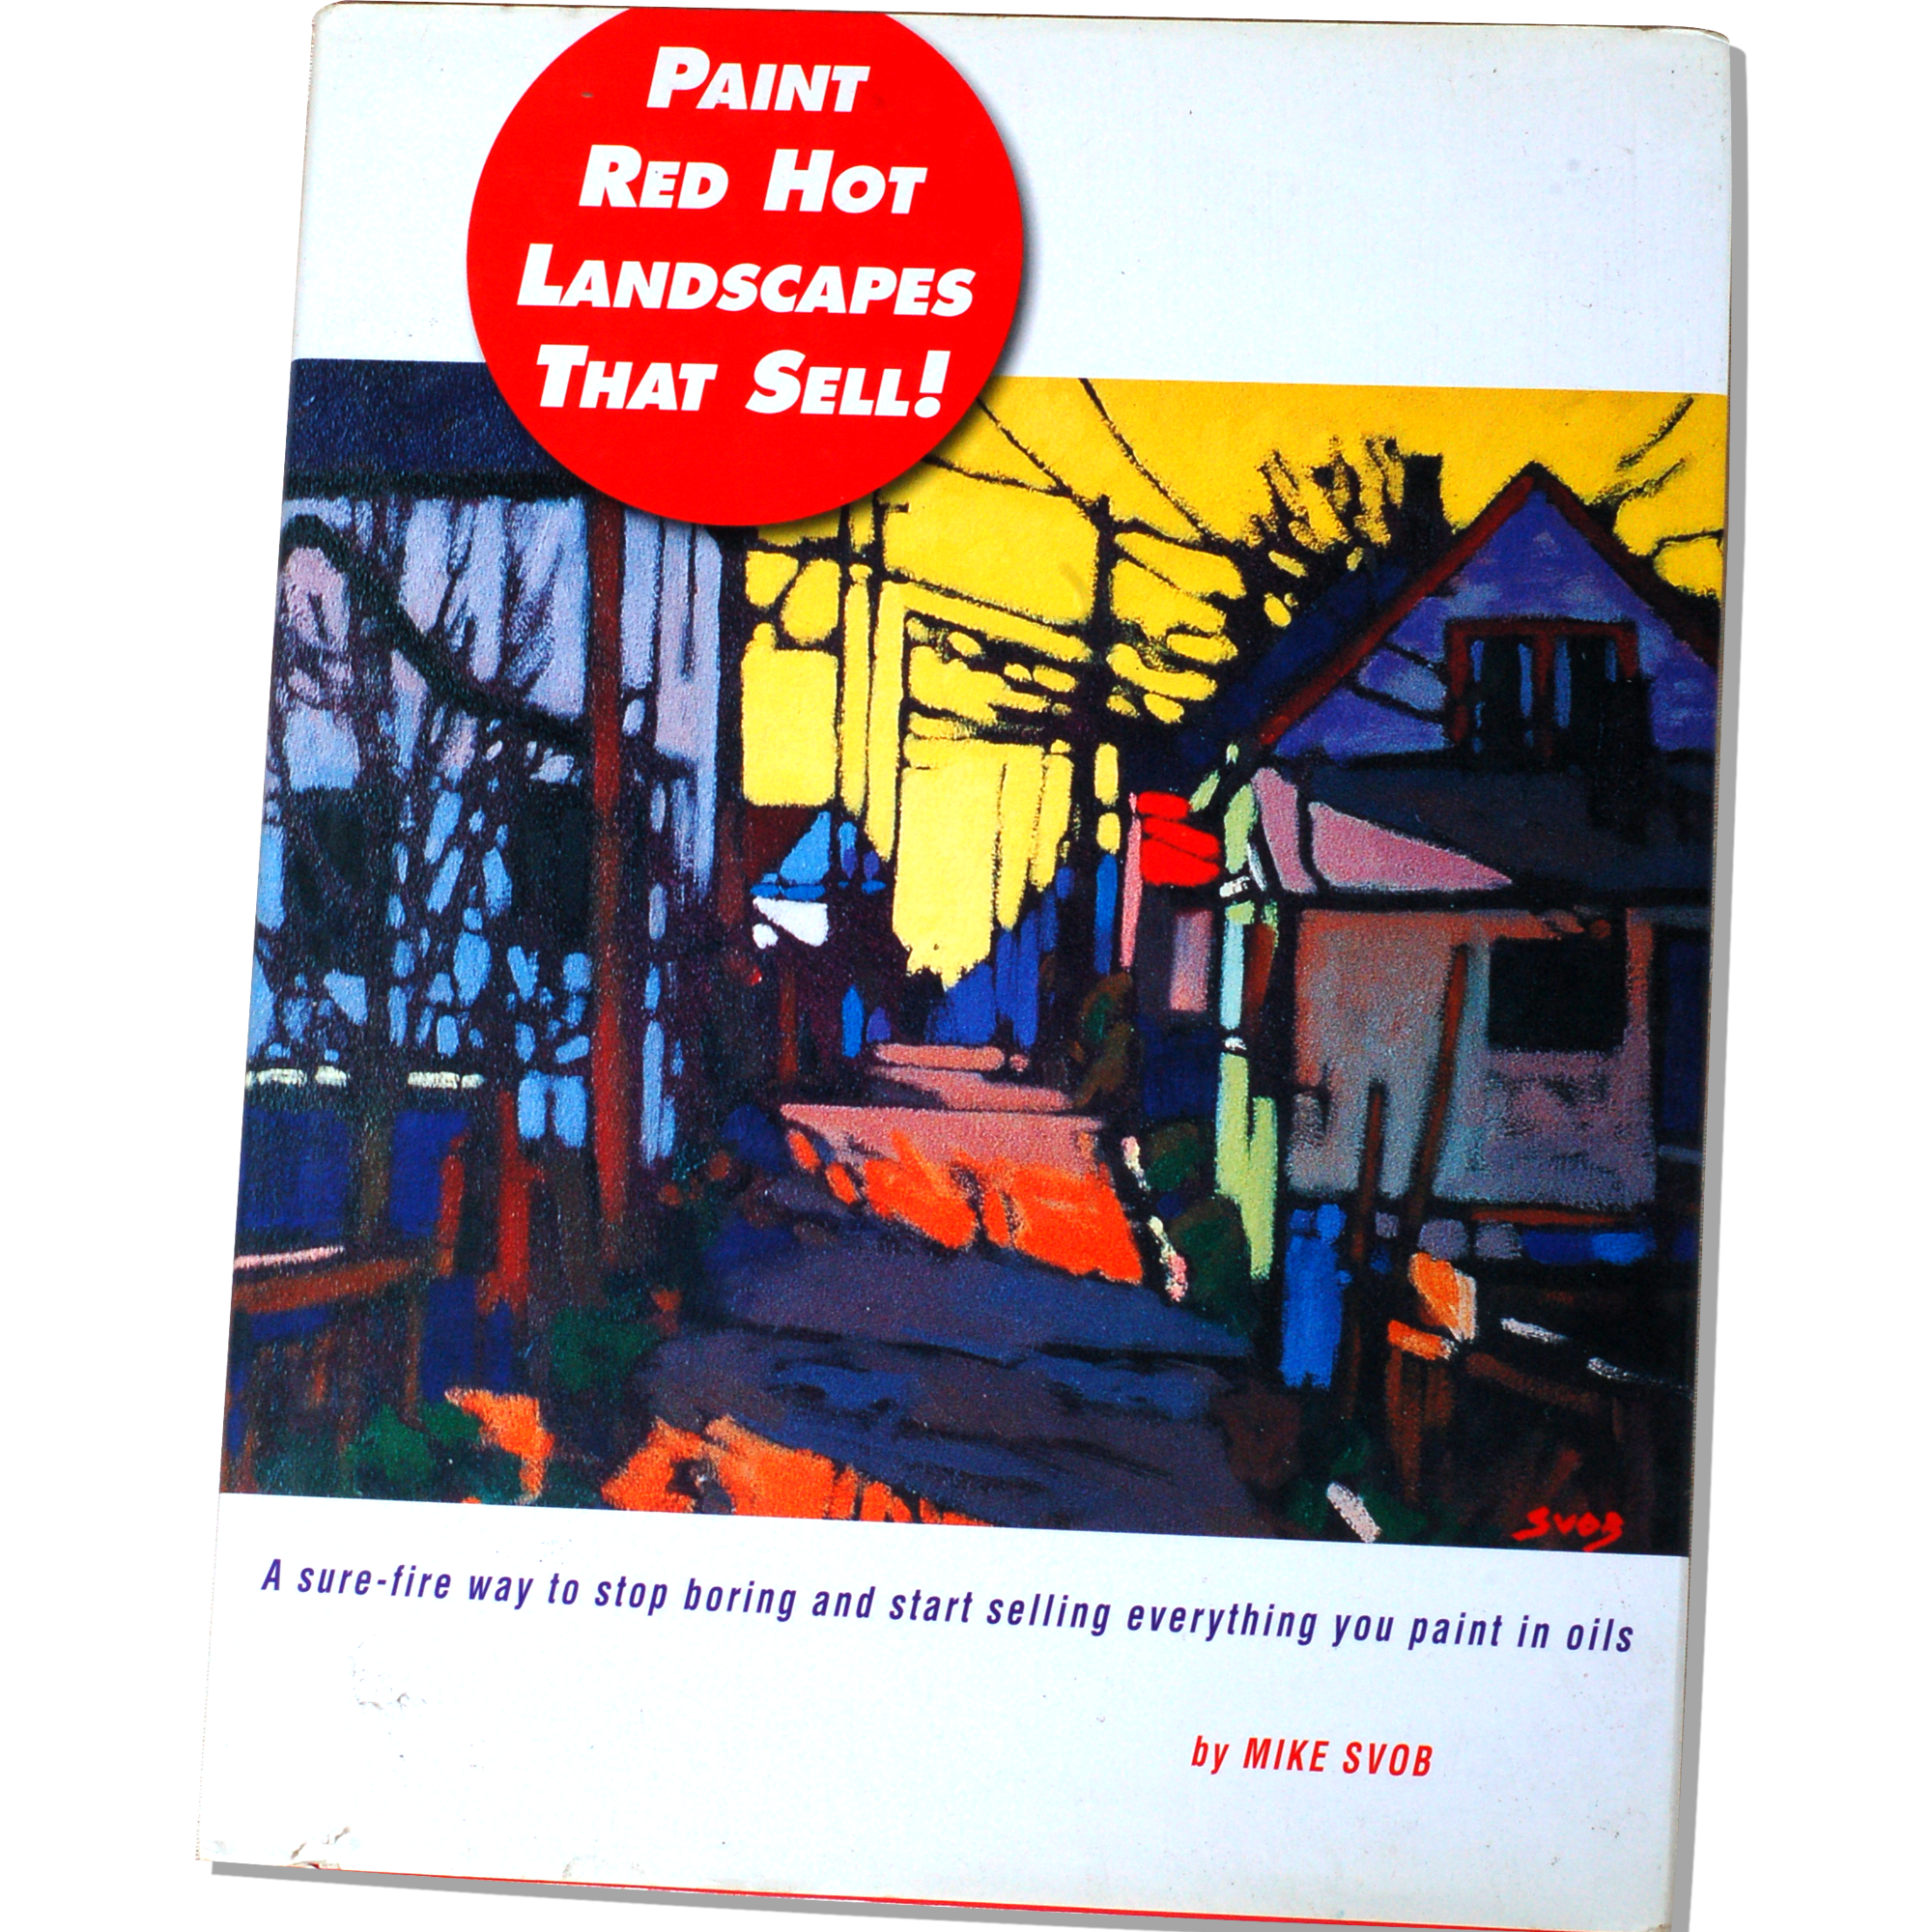 Paint Red Hot Landscapes That Sell